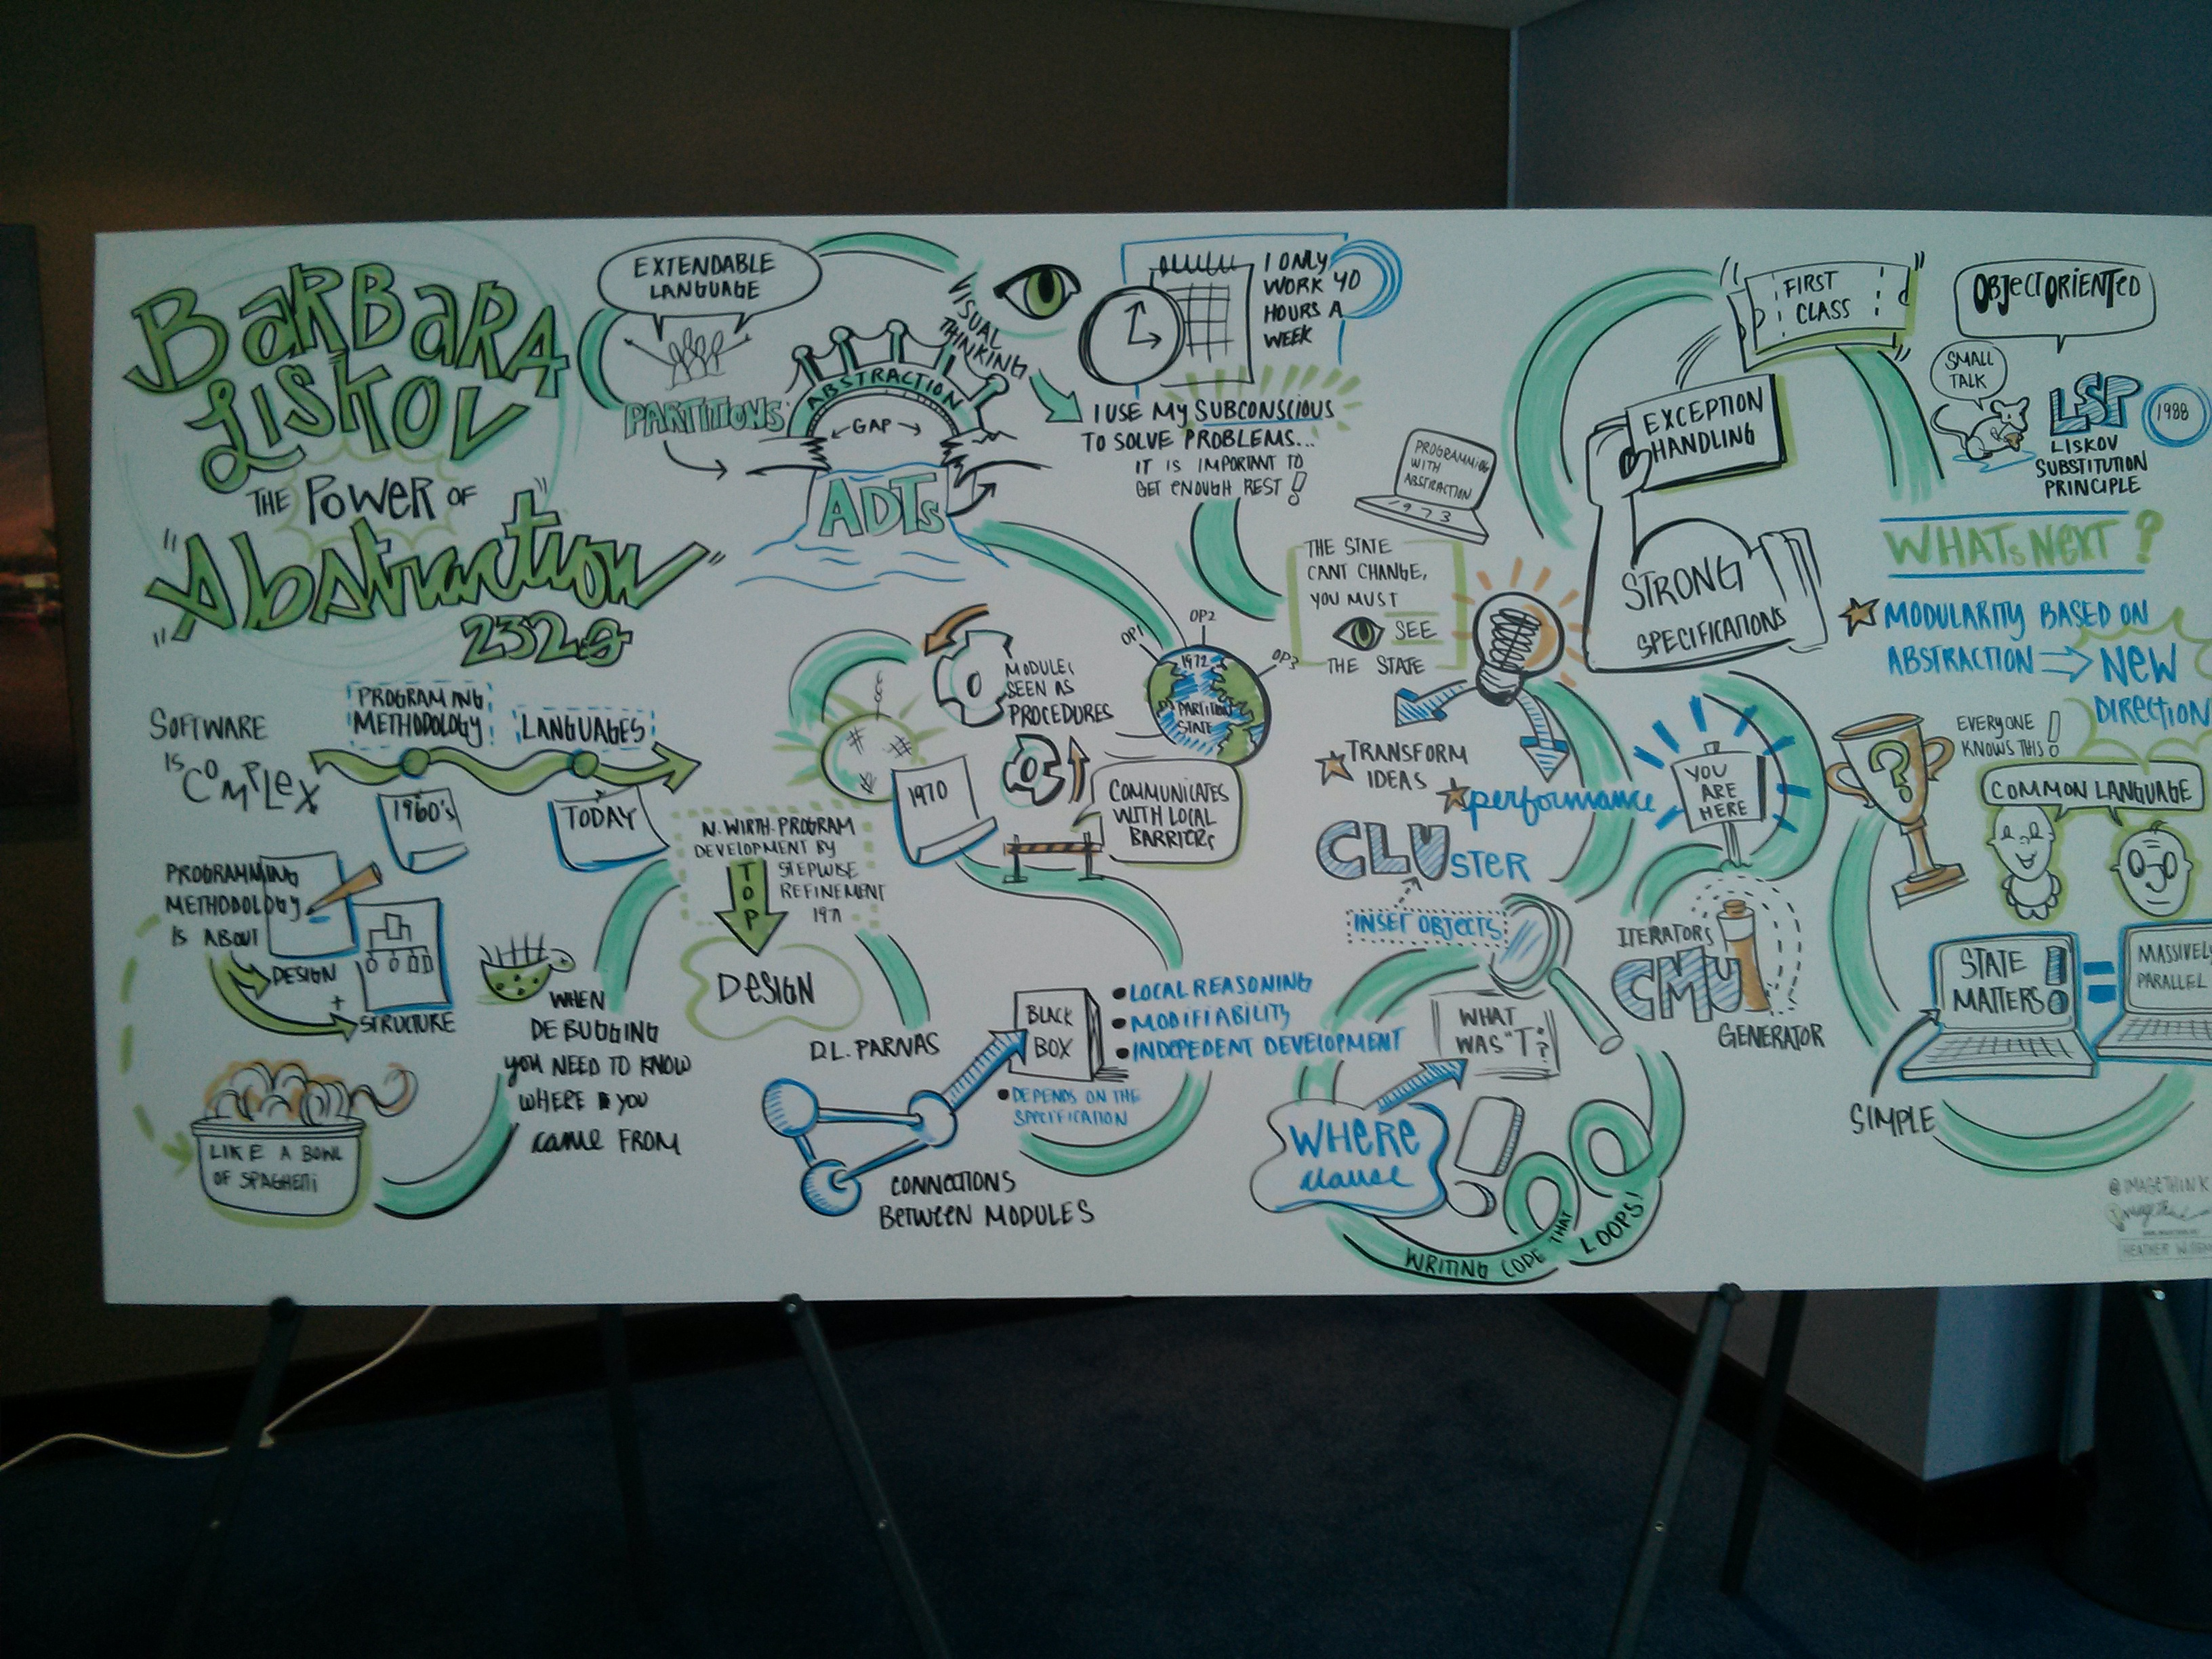 A visualisation drawn by Heather Willems of Barbara Liskov's talk on The Power of Abstraction at QCon London 2013